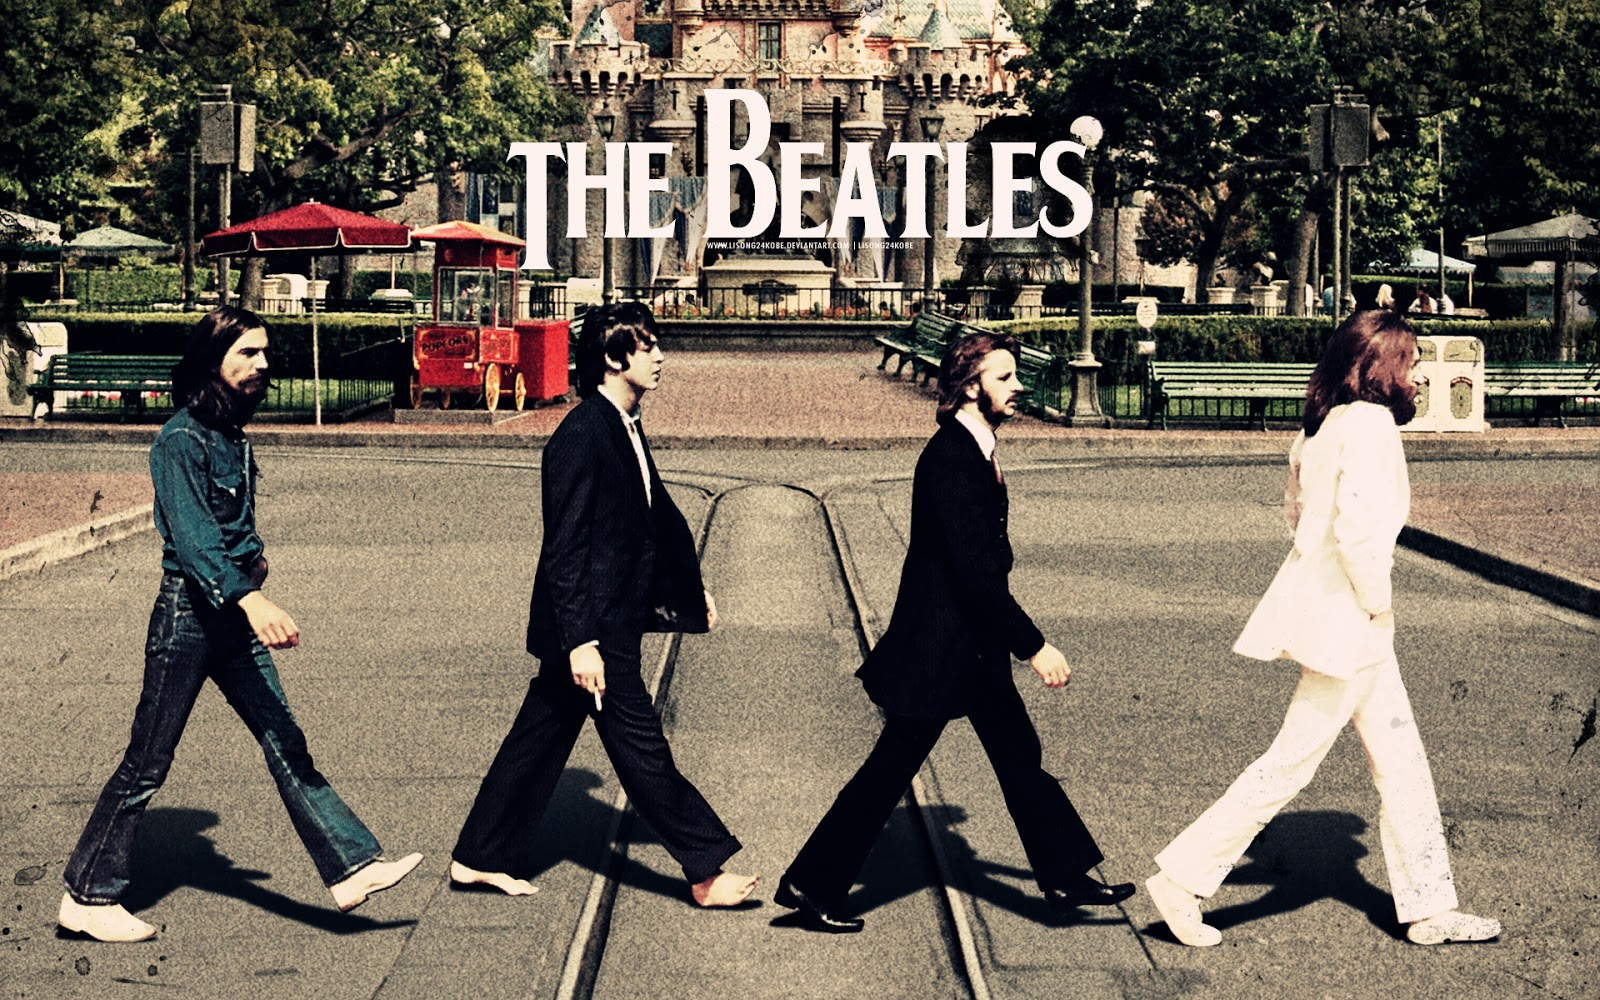 The Beatles picture.jpg